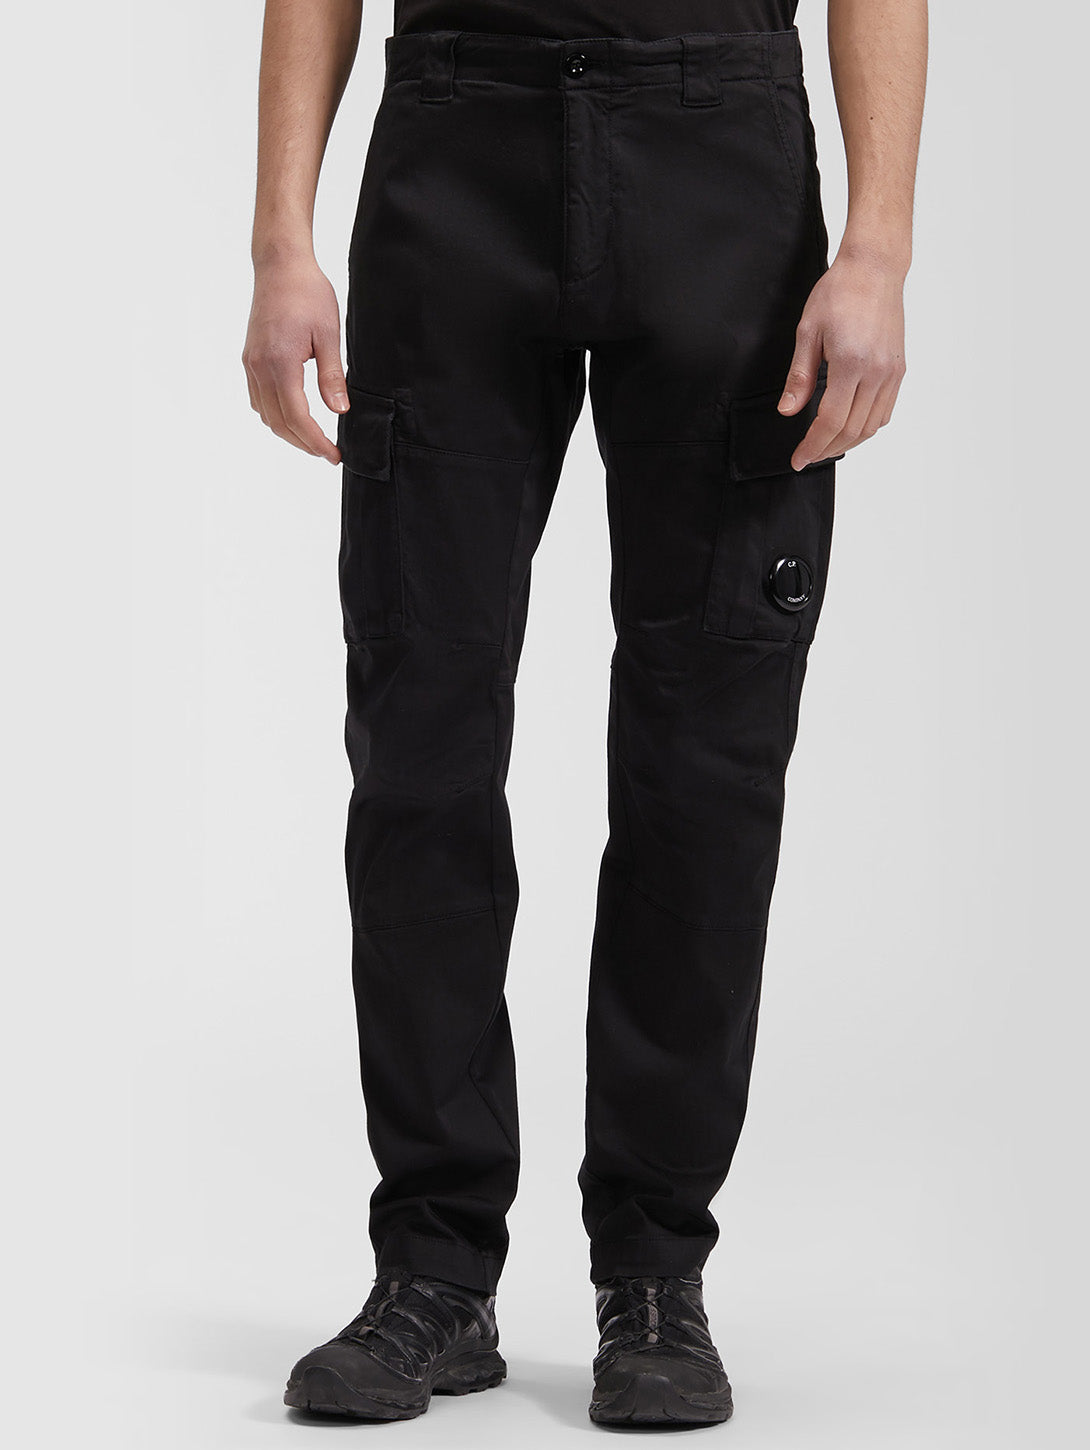 Raso Stretch Sateen Garment Dyed Cargo Pant - Black-CP COMPANY-Over the Rainbow